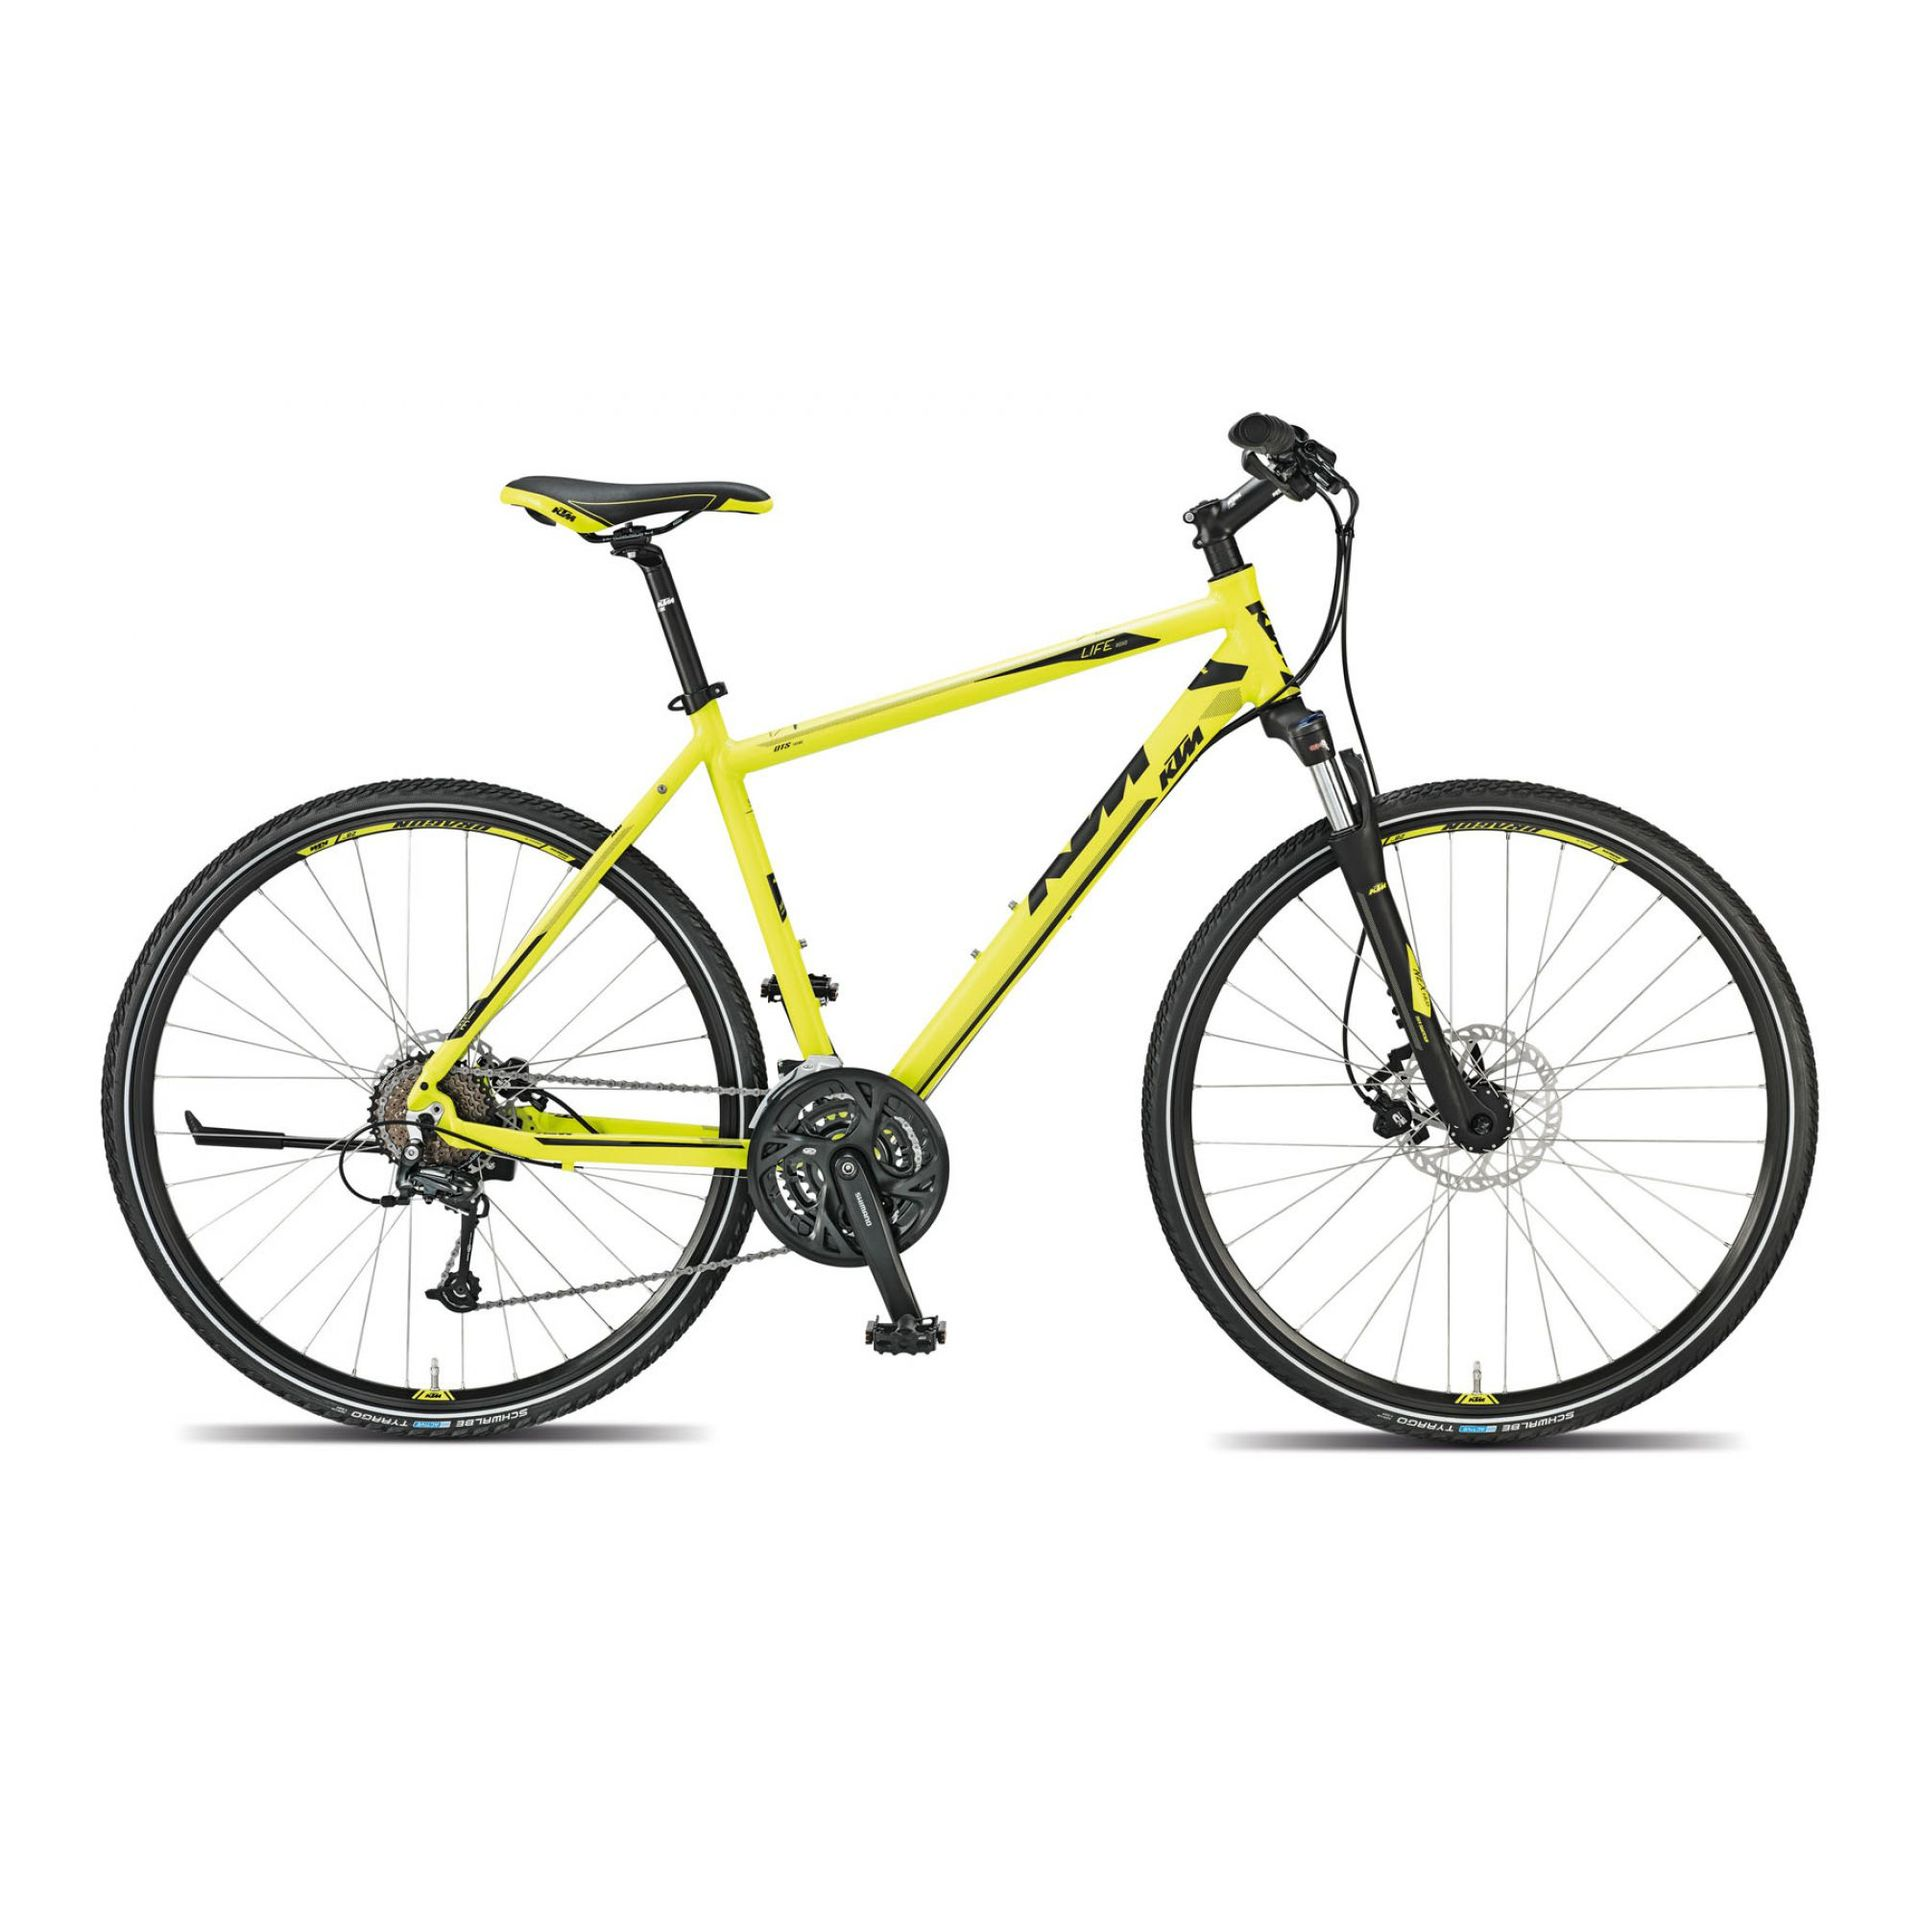 ROWER KTM LIFE ROAD NEON YELLOW